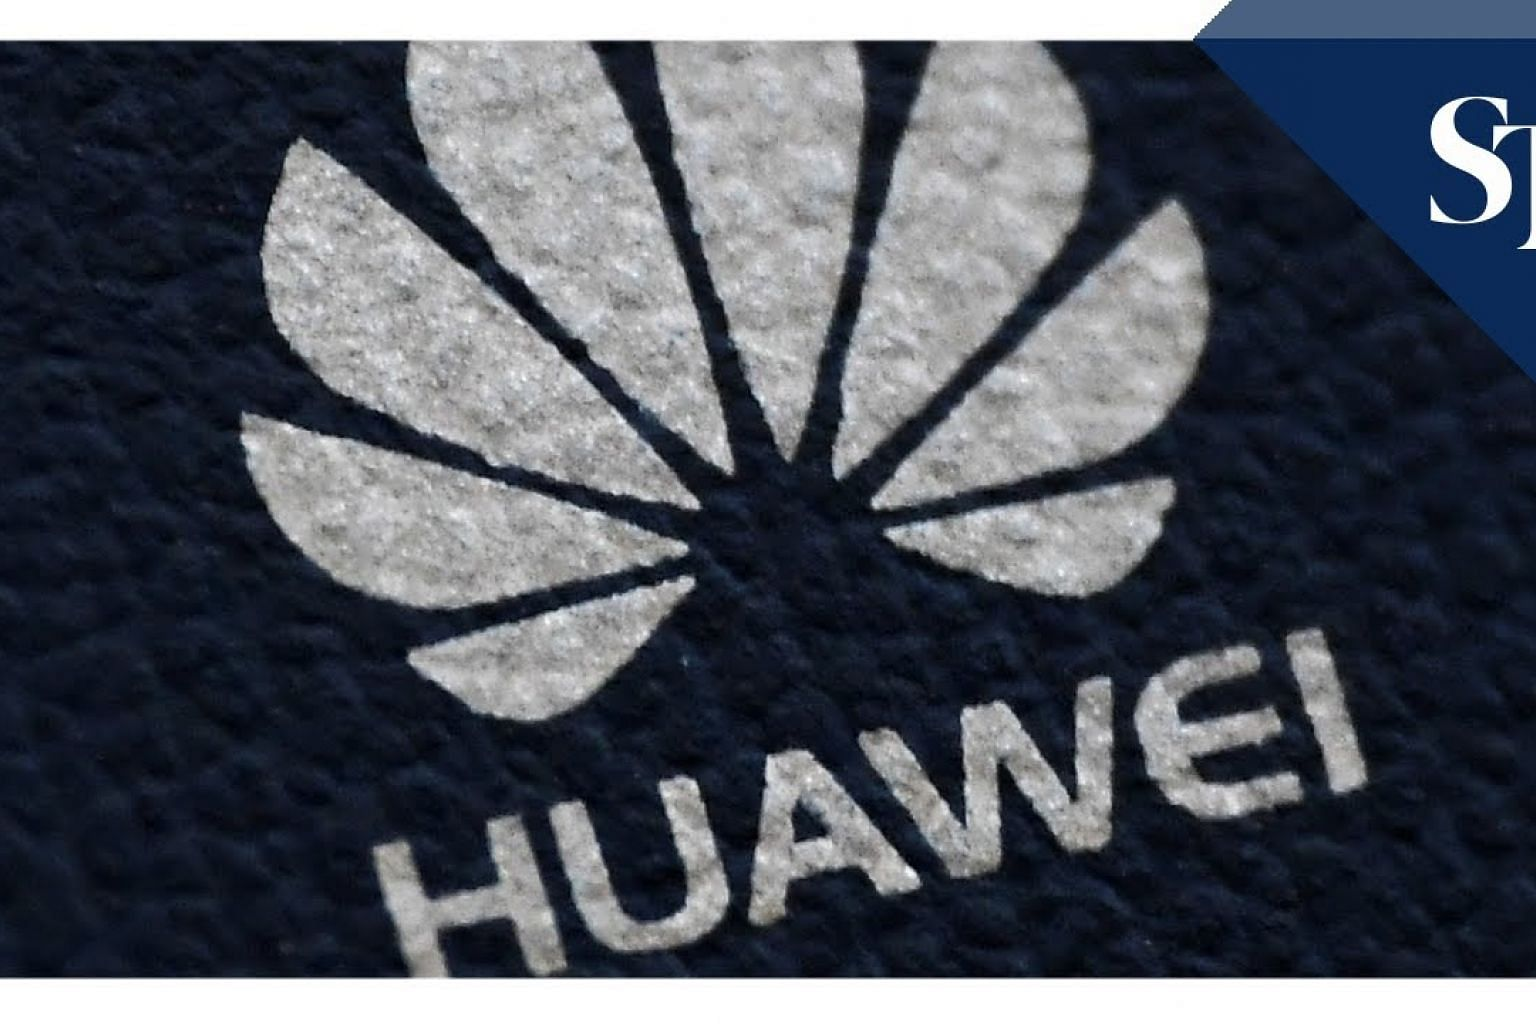 Britain grants Huawei a limited 5G role, defying US